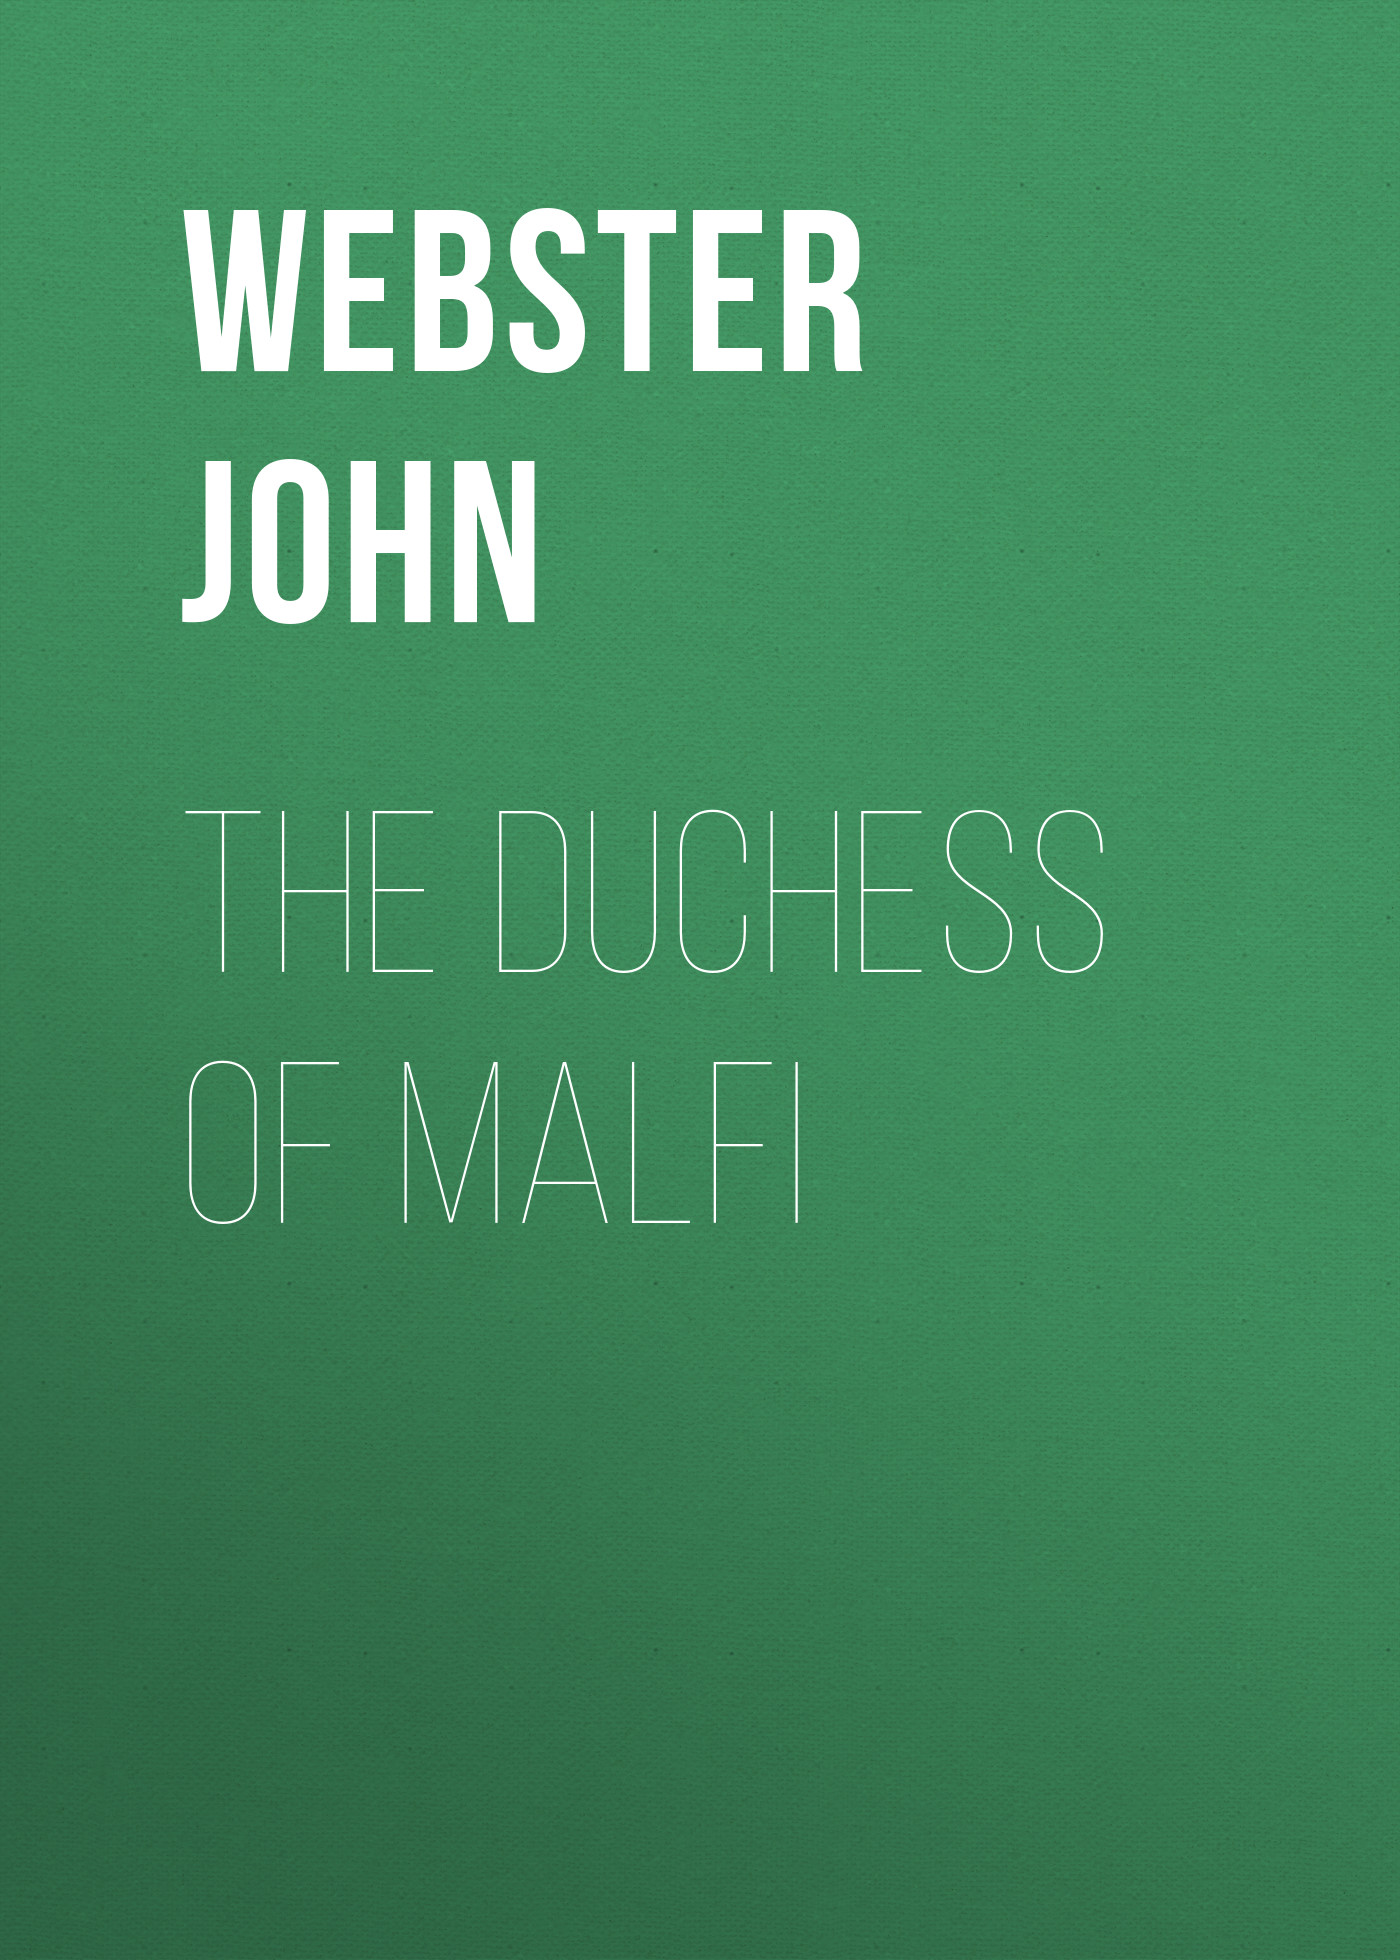 Webster John The Duchess of Malfi все цены